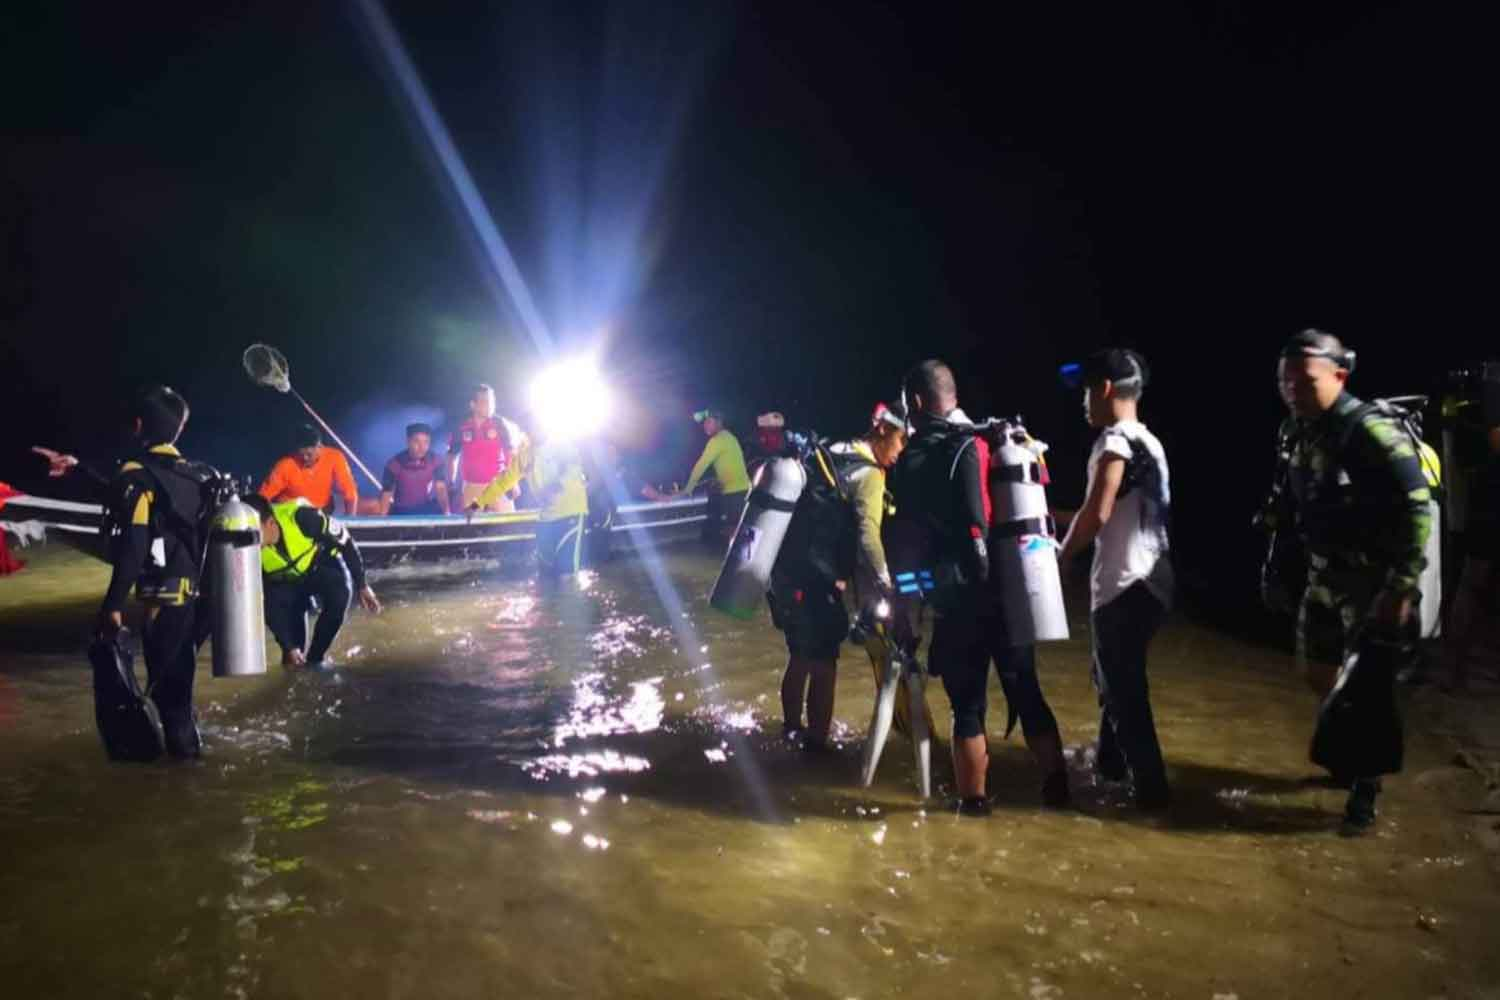 Divers embark on boats at Laem Pho beach in Chaiya district, Surat Thani, on Tuesday night, to search for the young woman swept out to sea while collecting shellfish. (Photo: Supapong Chaolan)